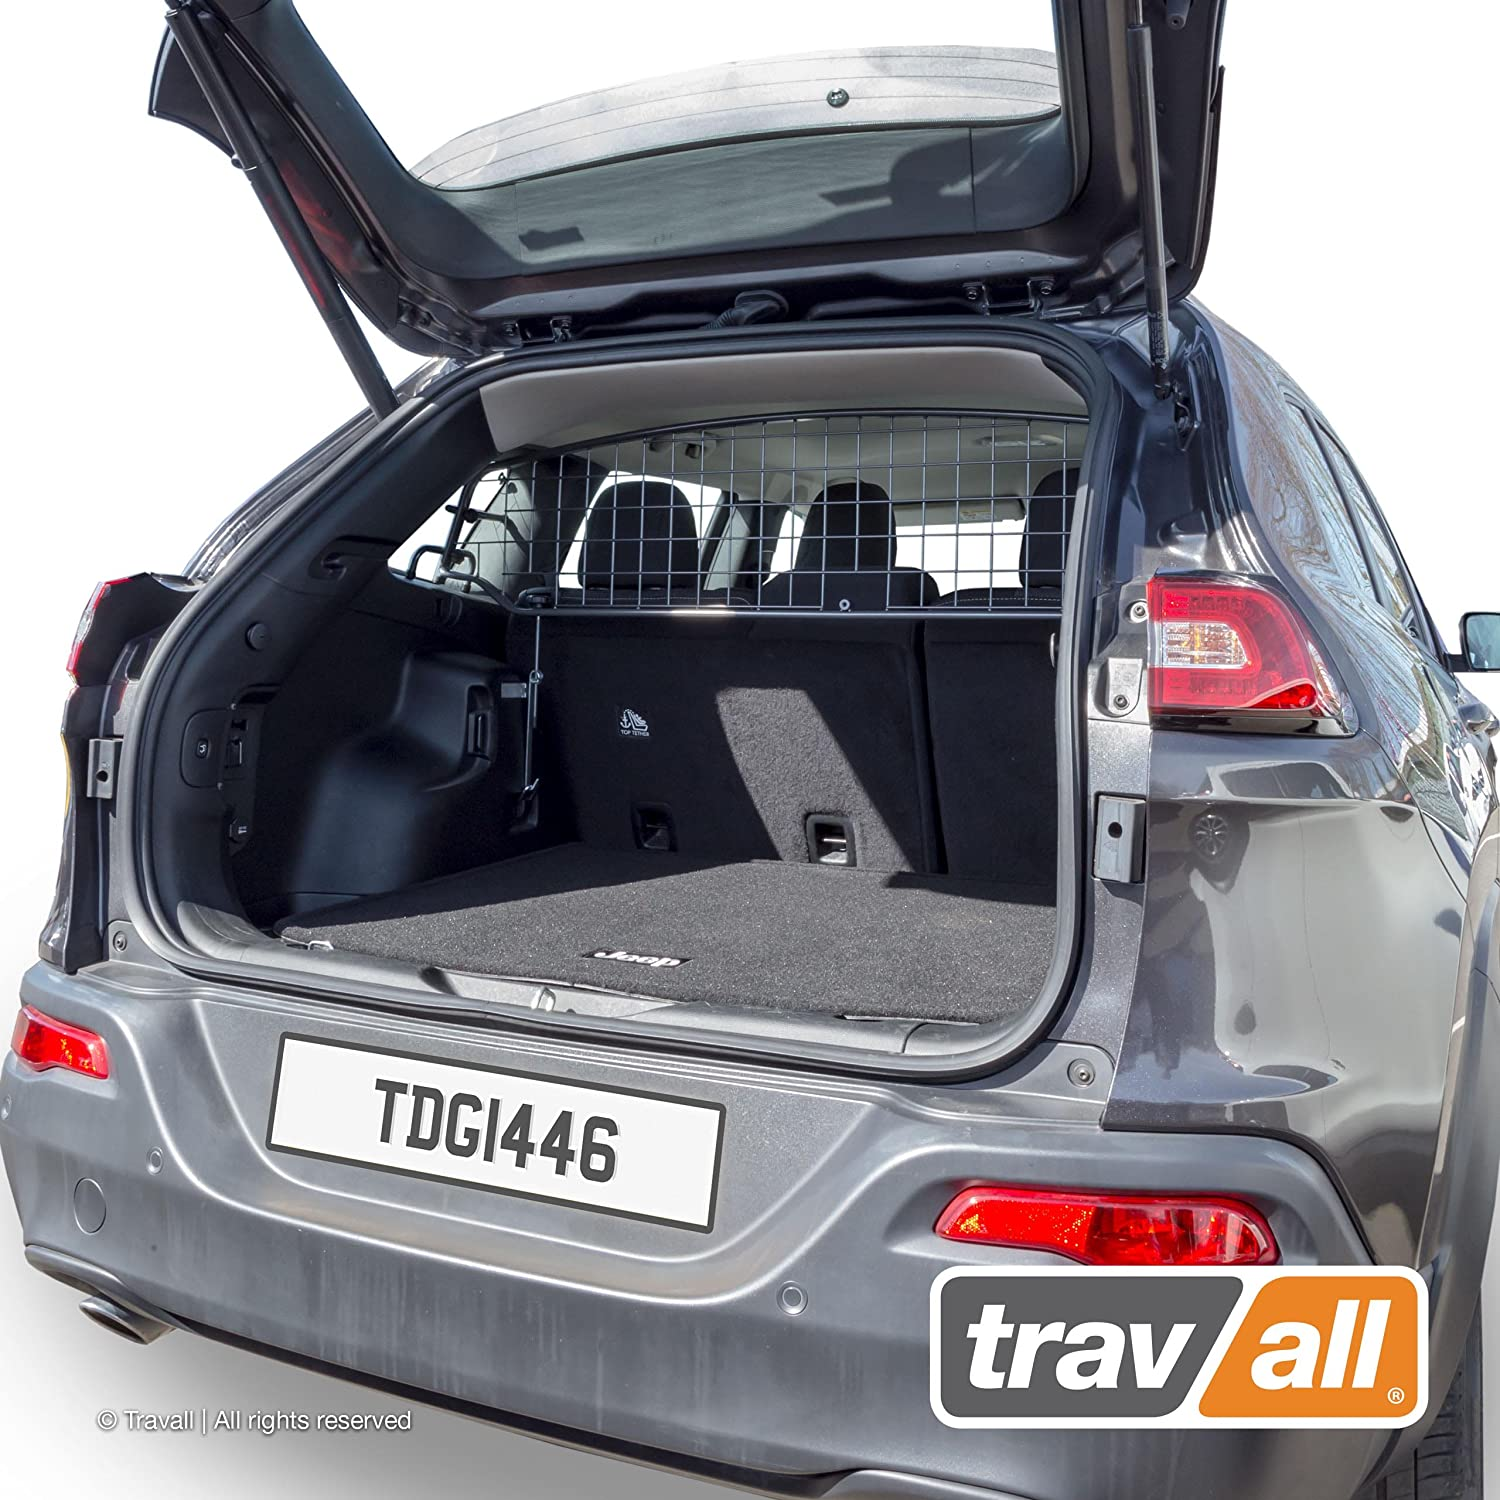 Travall Guard Compatible with Jeep Cherokee 2013-Current TDG1446 – Rattle-Free Steel Pet Barrier